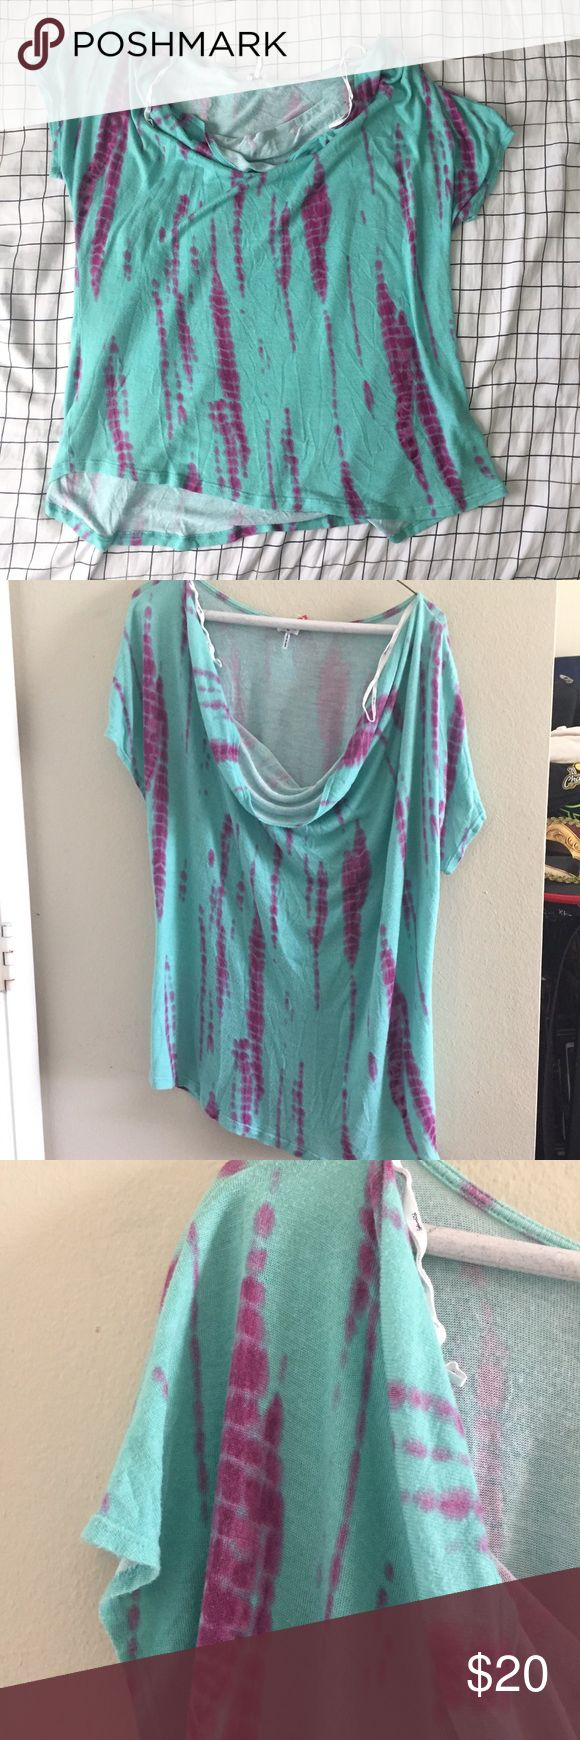 SPLENDID Size 2X Tie Dye Plus Size Slouchy Top SPLENDID Women's Size 2X Tie Dye Plus Size Slouchy Top  Size: 2X Short Sleeves  Materials: 100% Rayon  Measurements: Chest: 25in Waist: 22in Length: 26in Anthropologie Tops Blouses